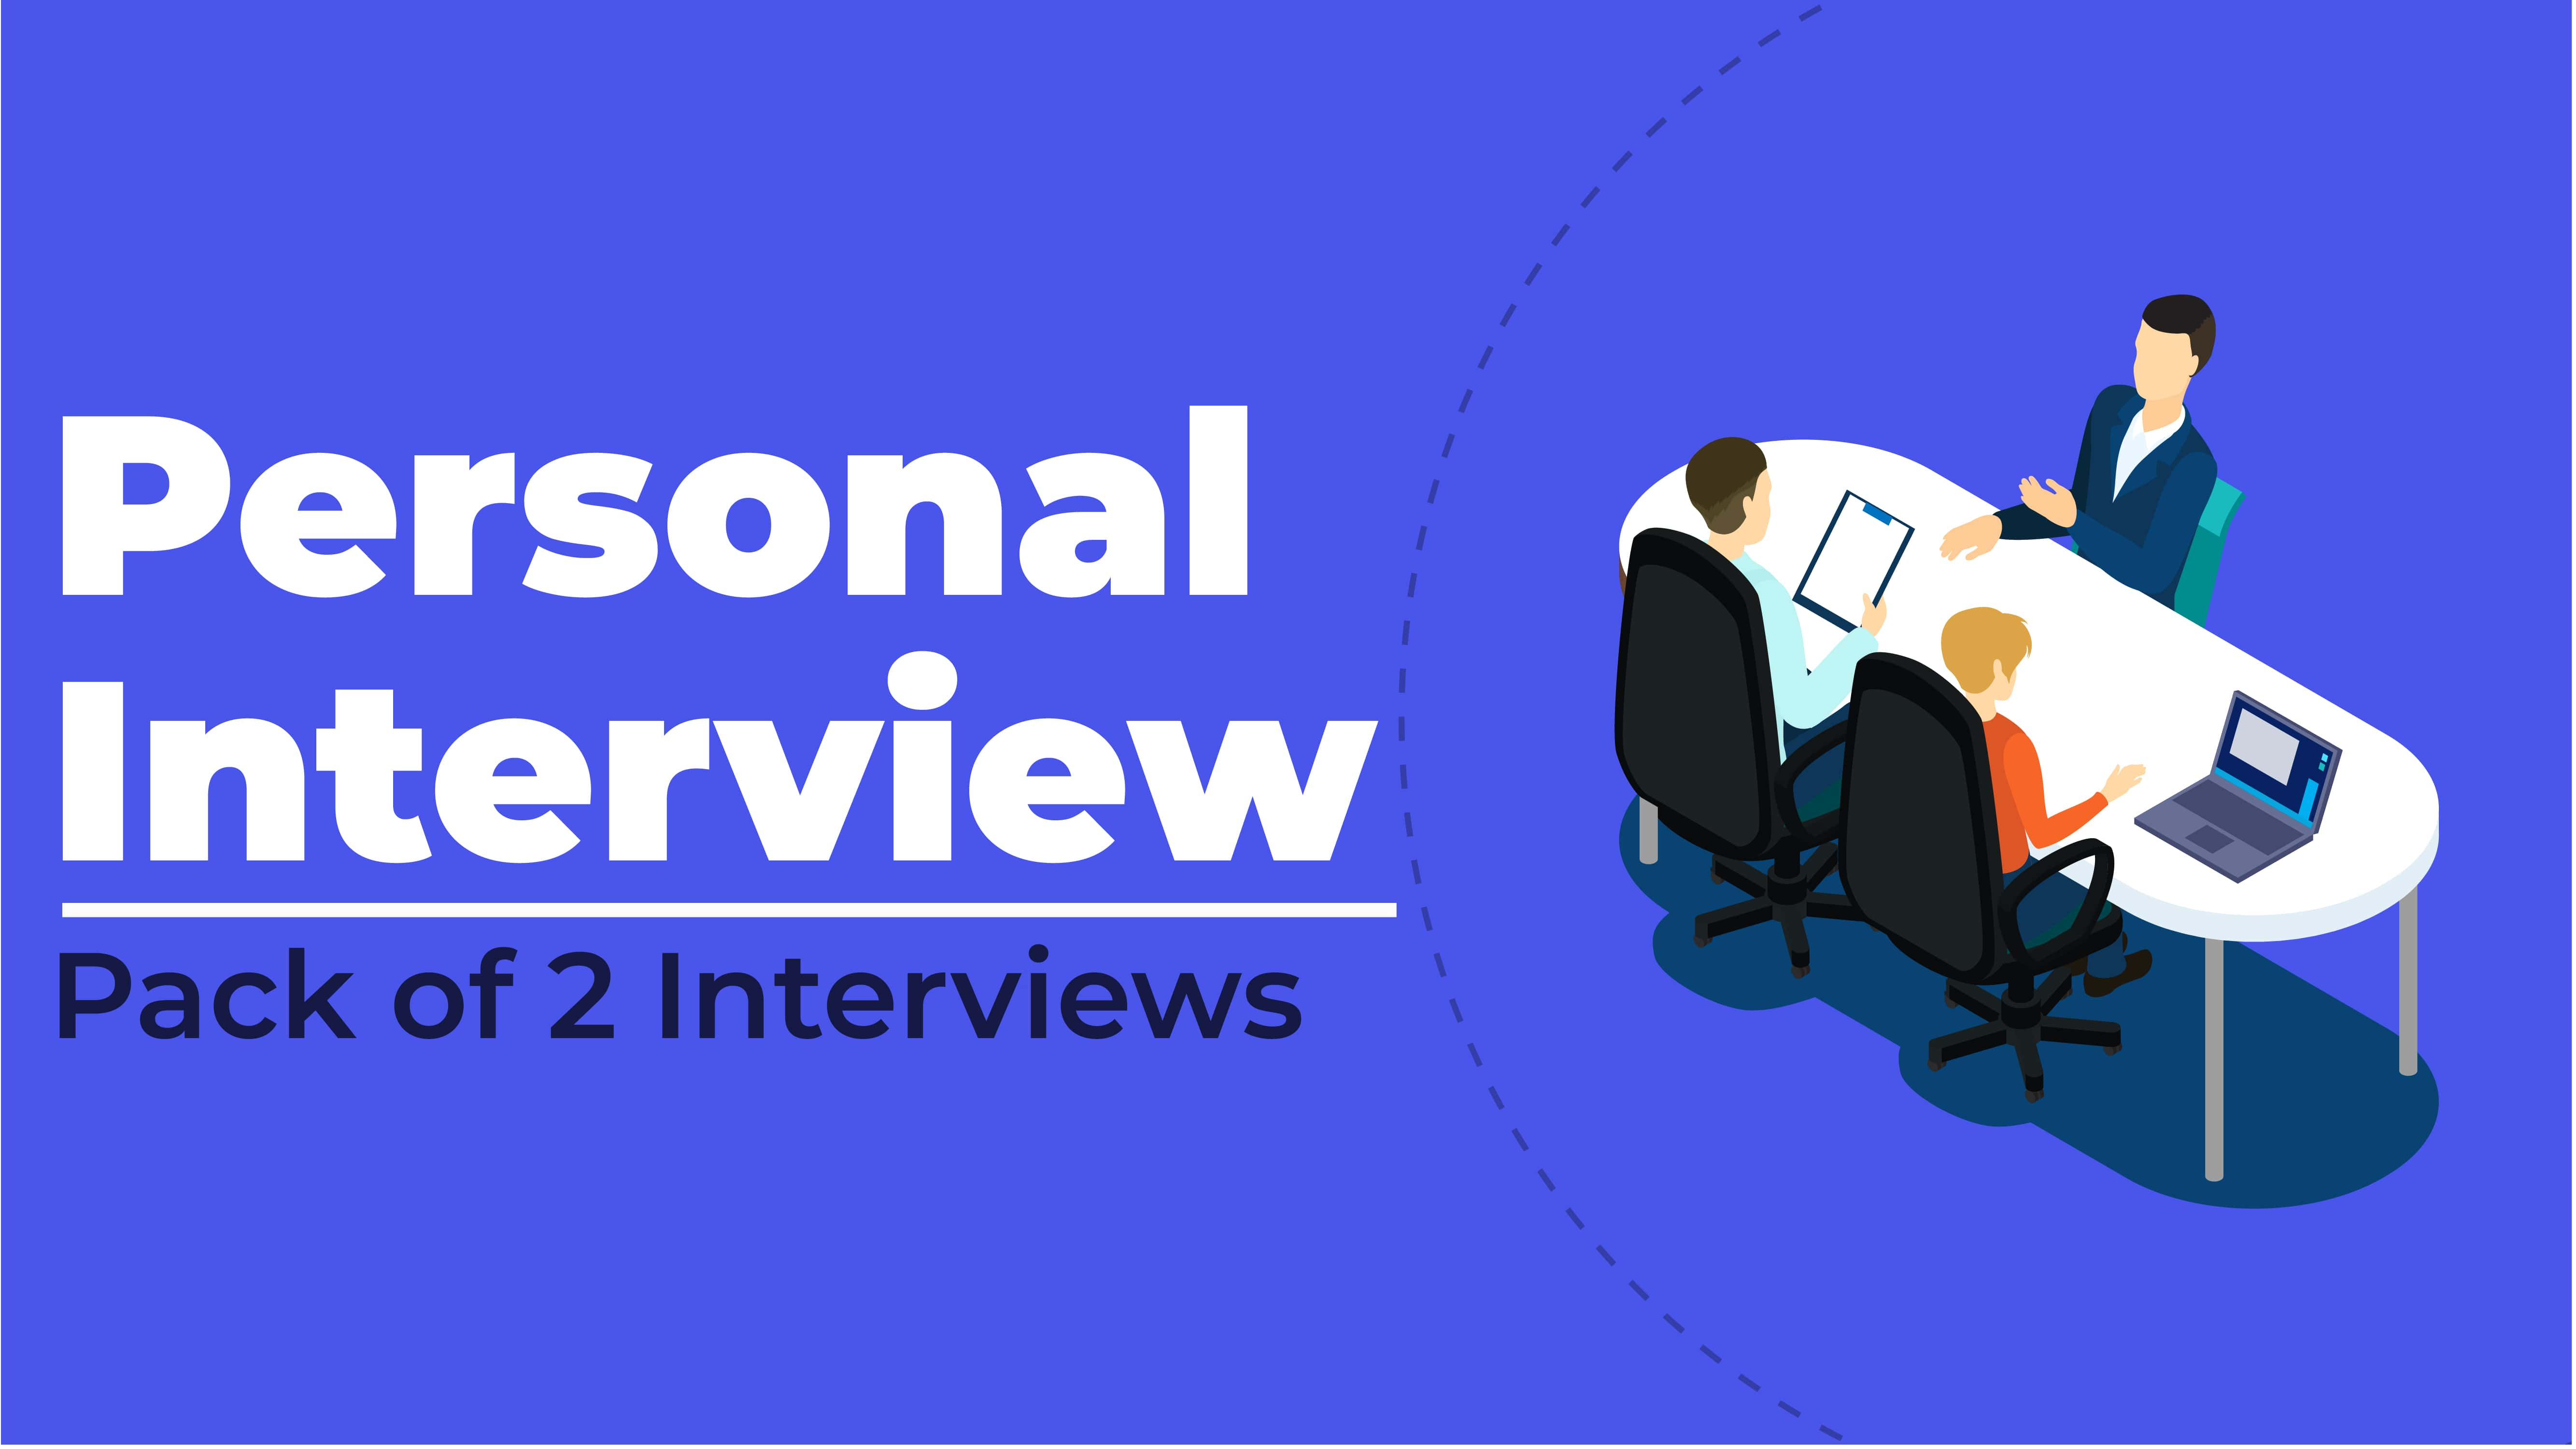 Personal Interview (Pack of 2 Interviews)